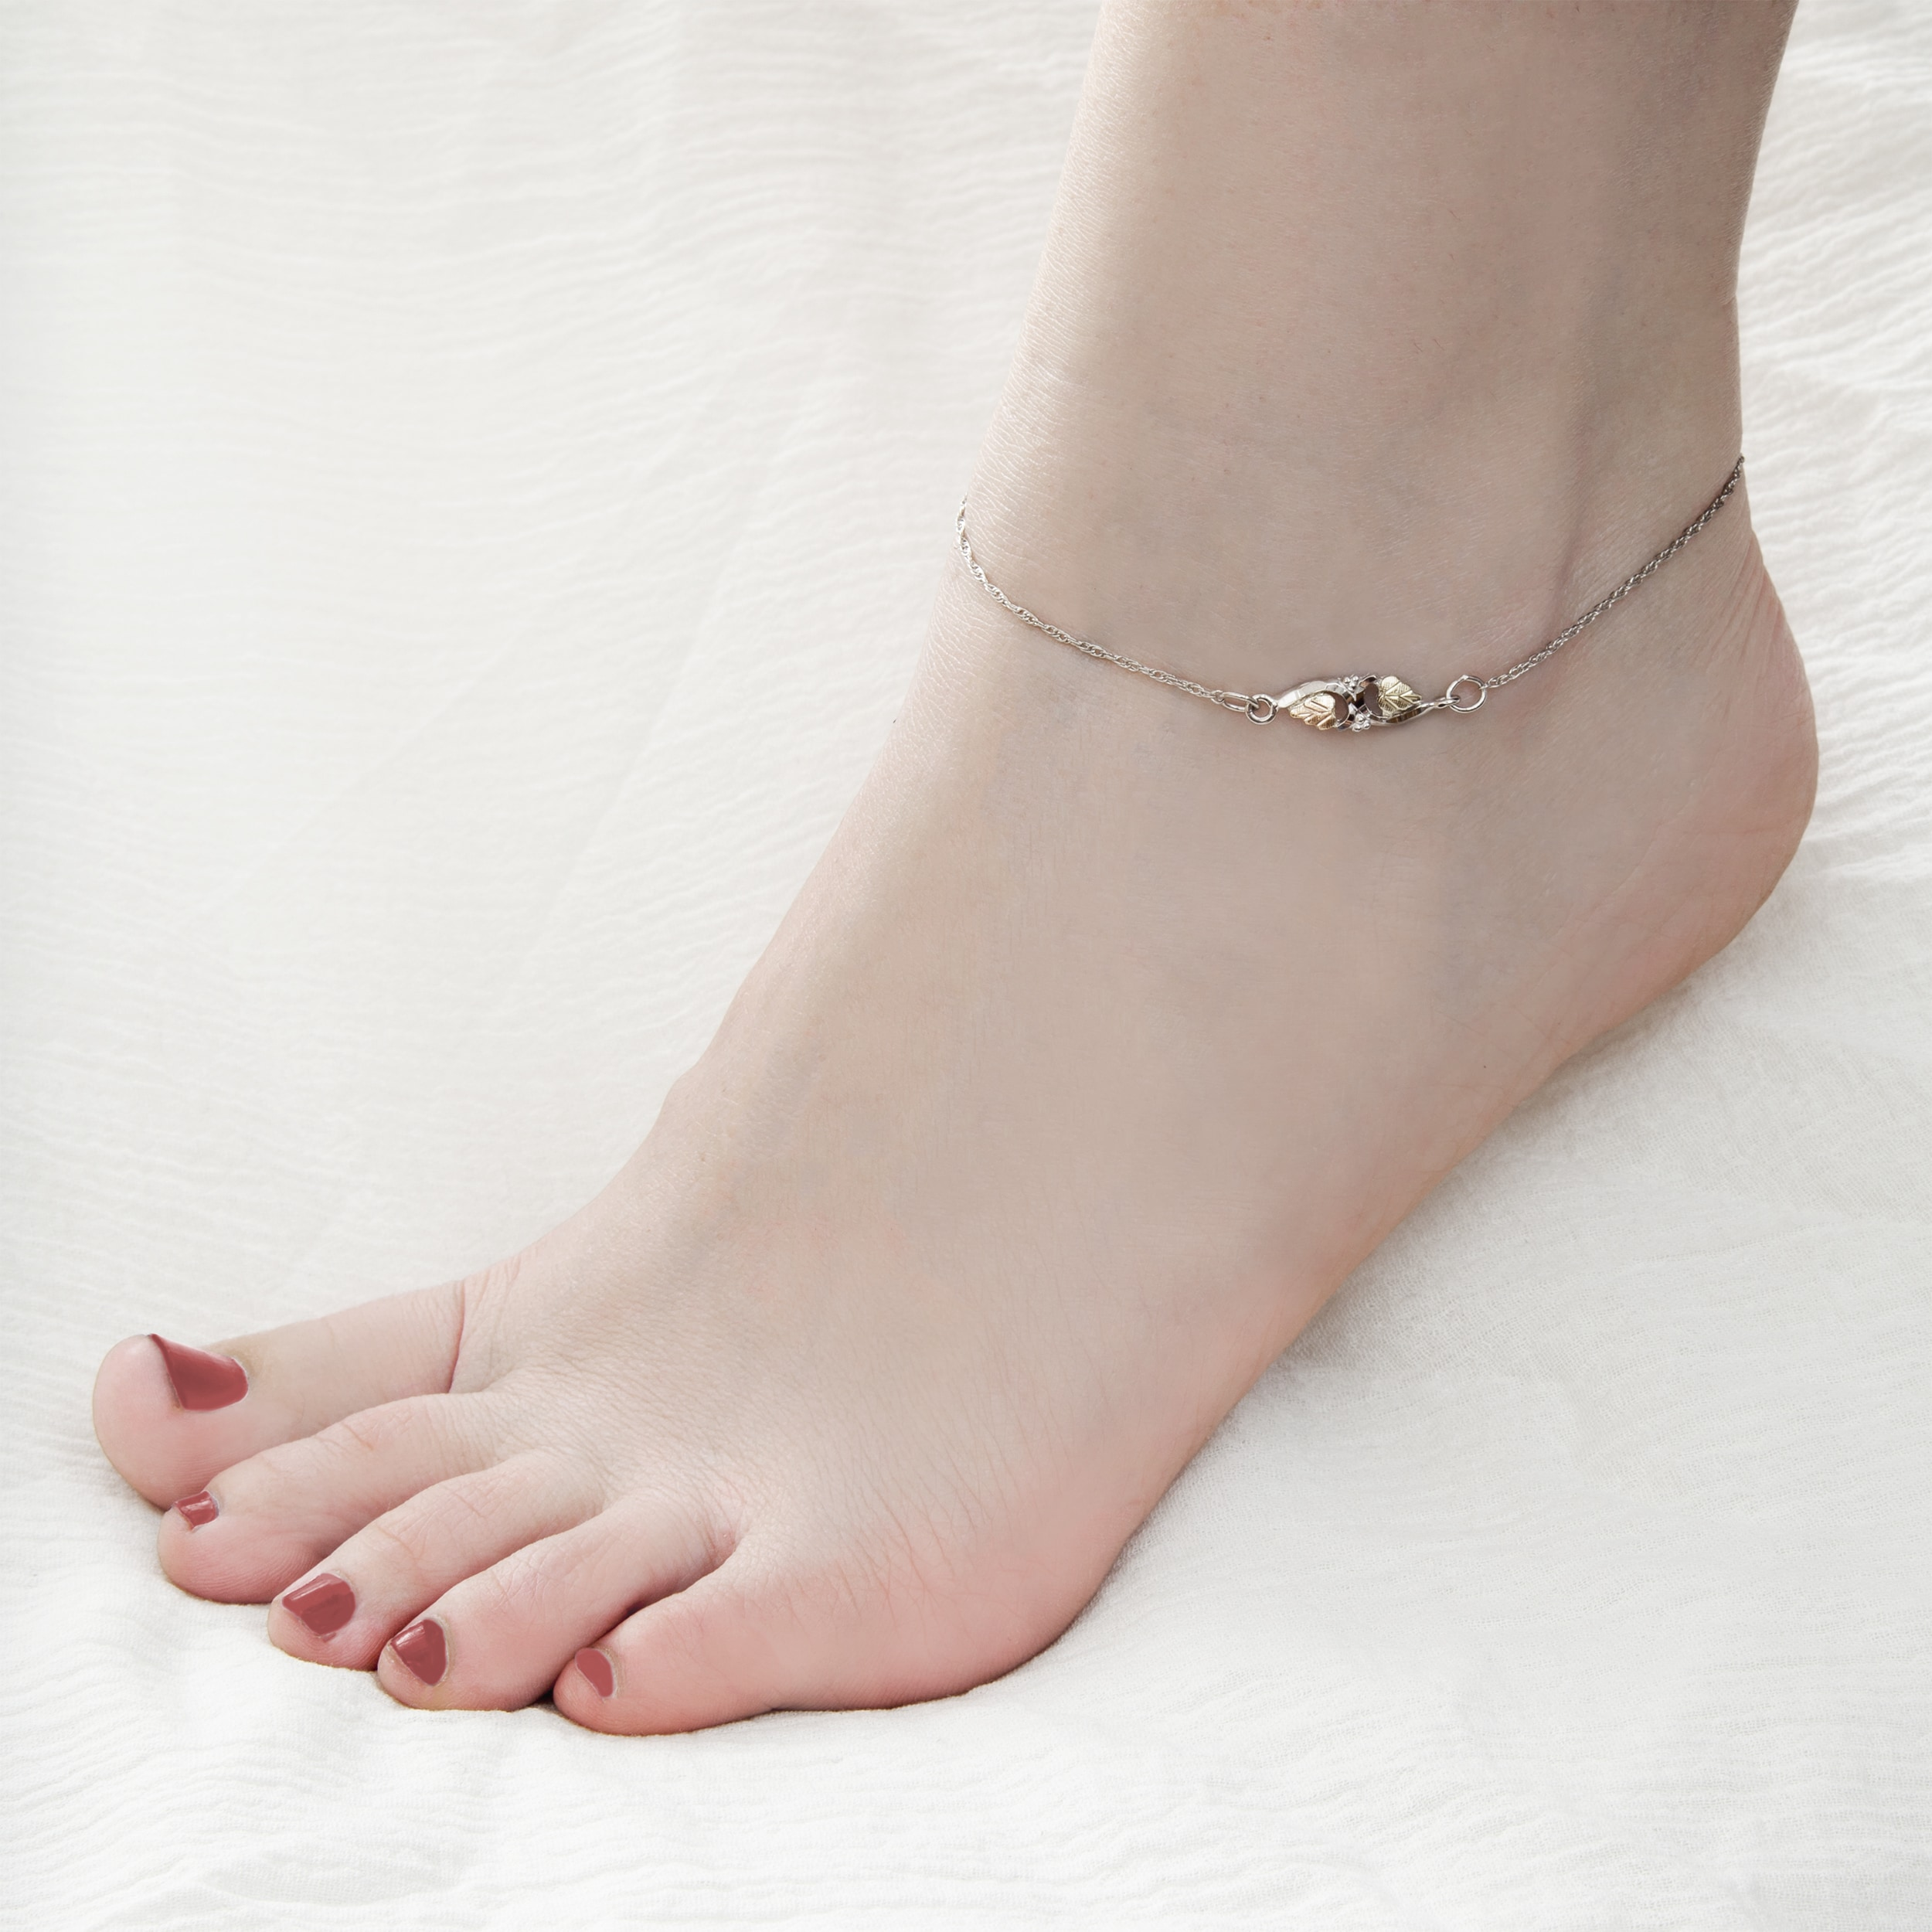 gold anklets sale ankle jewelry id z charm karat anklet j for at yellow bracelets bracelet